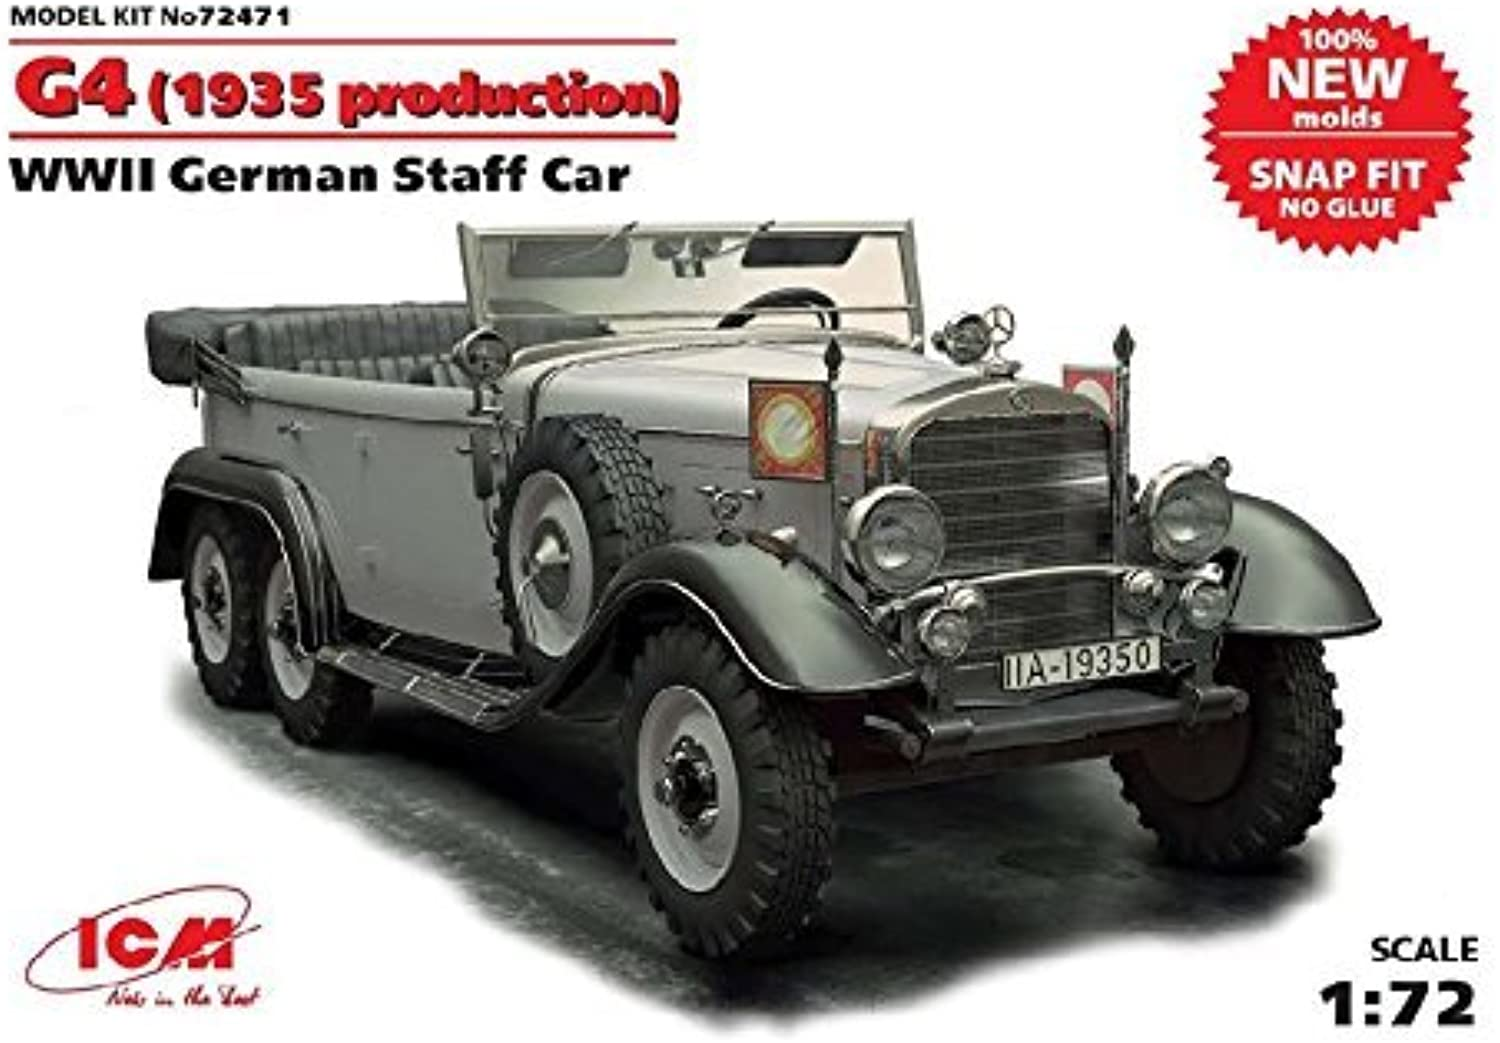 1935- G4 Production WWII German Staff Car Snap Fit by ICM